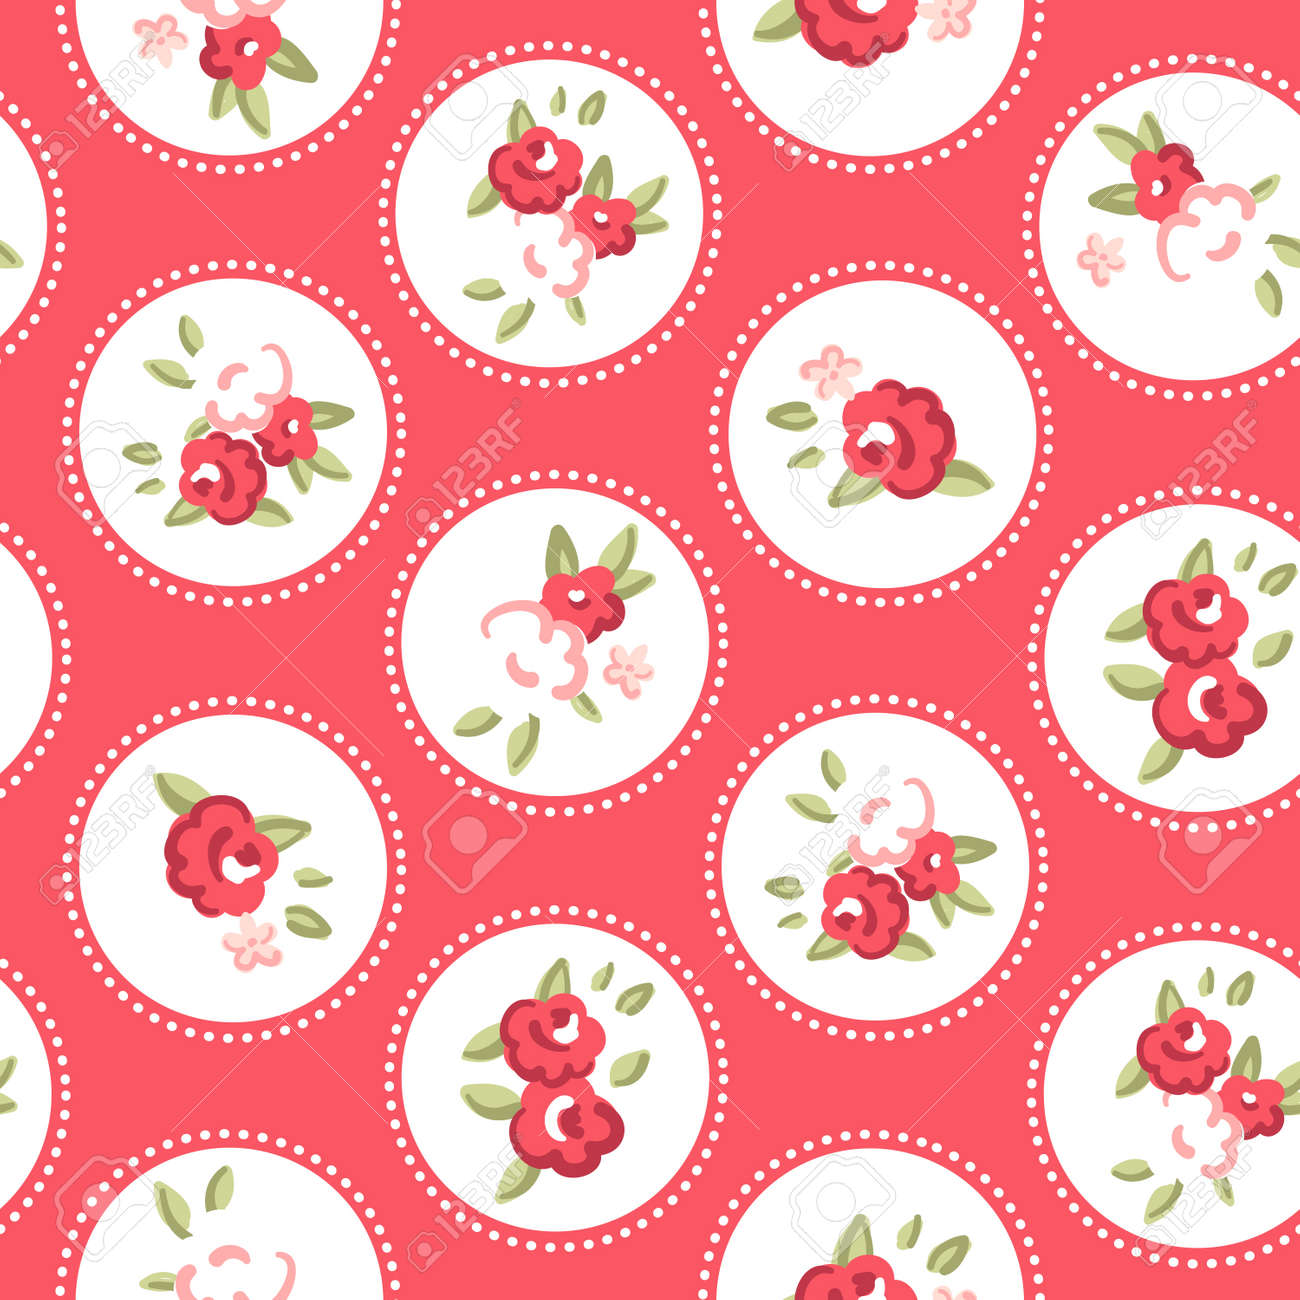 Vintage Rose Pattern Seamless Retro Rose Wallpaper Royalty Free Cliparts Vectors And Stock Illustration Image 14255091